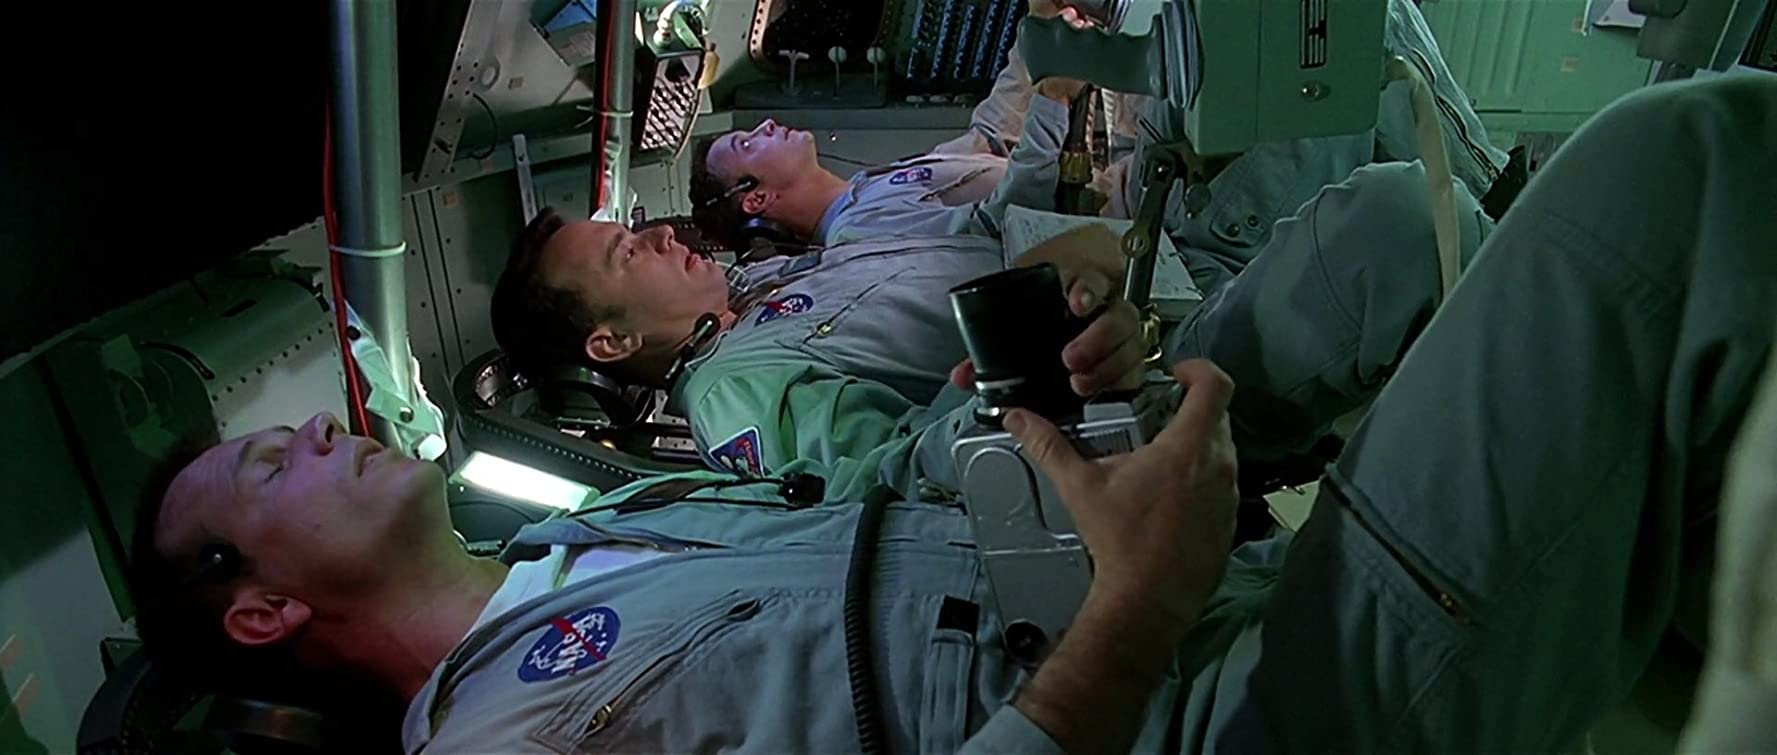 Tom Hanks Bill Paxton and Gary Sinise in Apollo 13 1995